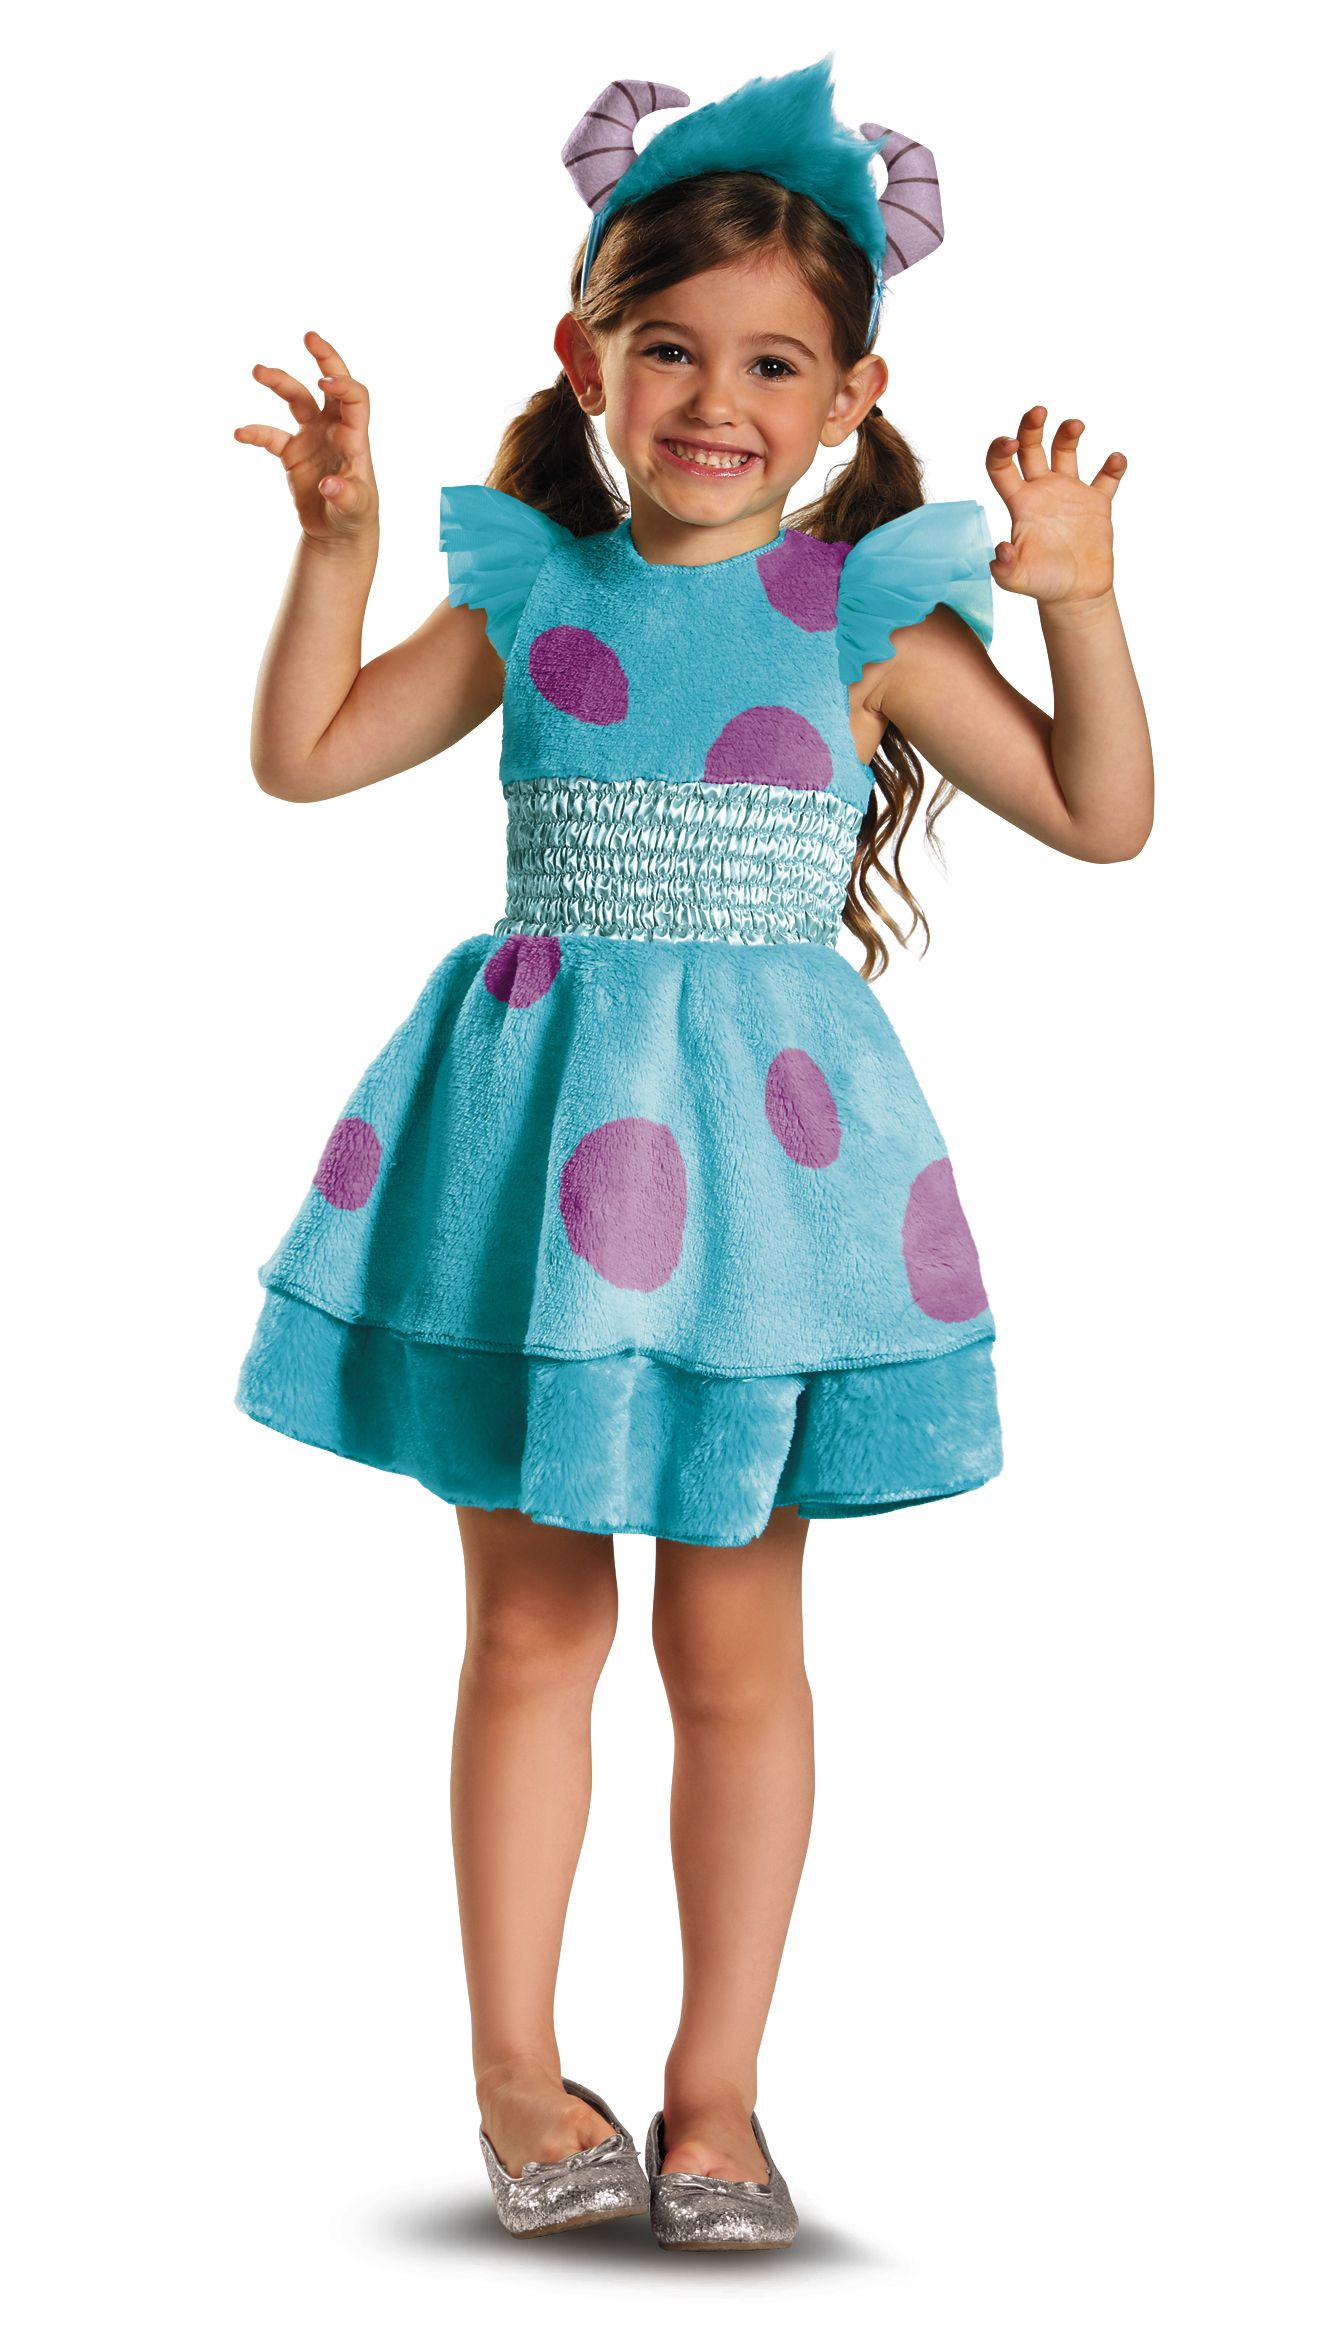 Clearance Toddler S Sully Monsters Inc Dress Costume Toddler Costumes Girl Halloween Costumes Women Toddler Halloween Costumes